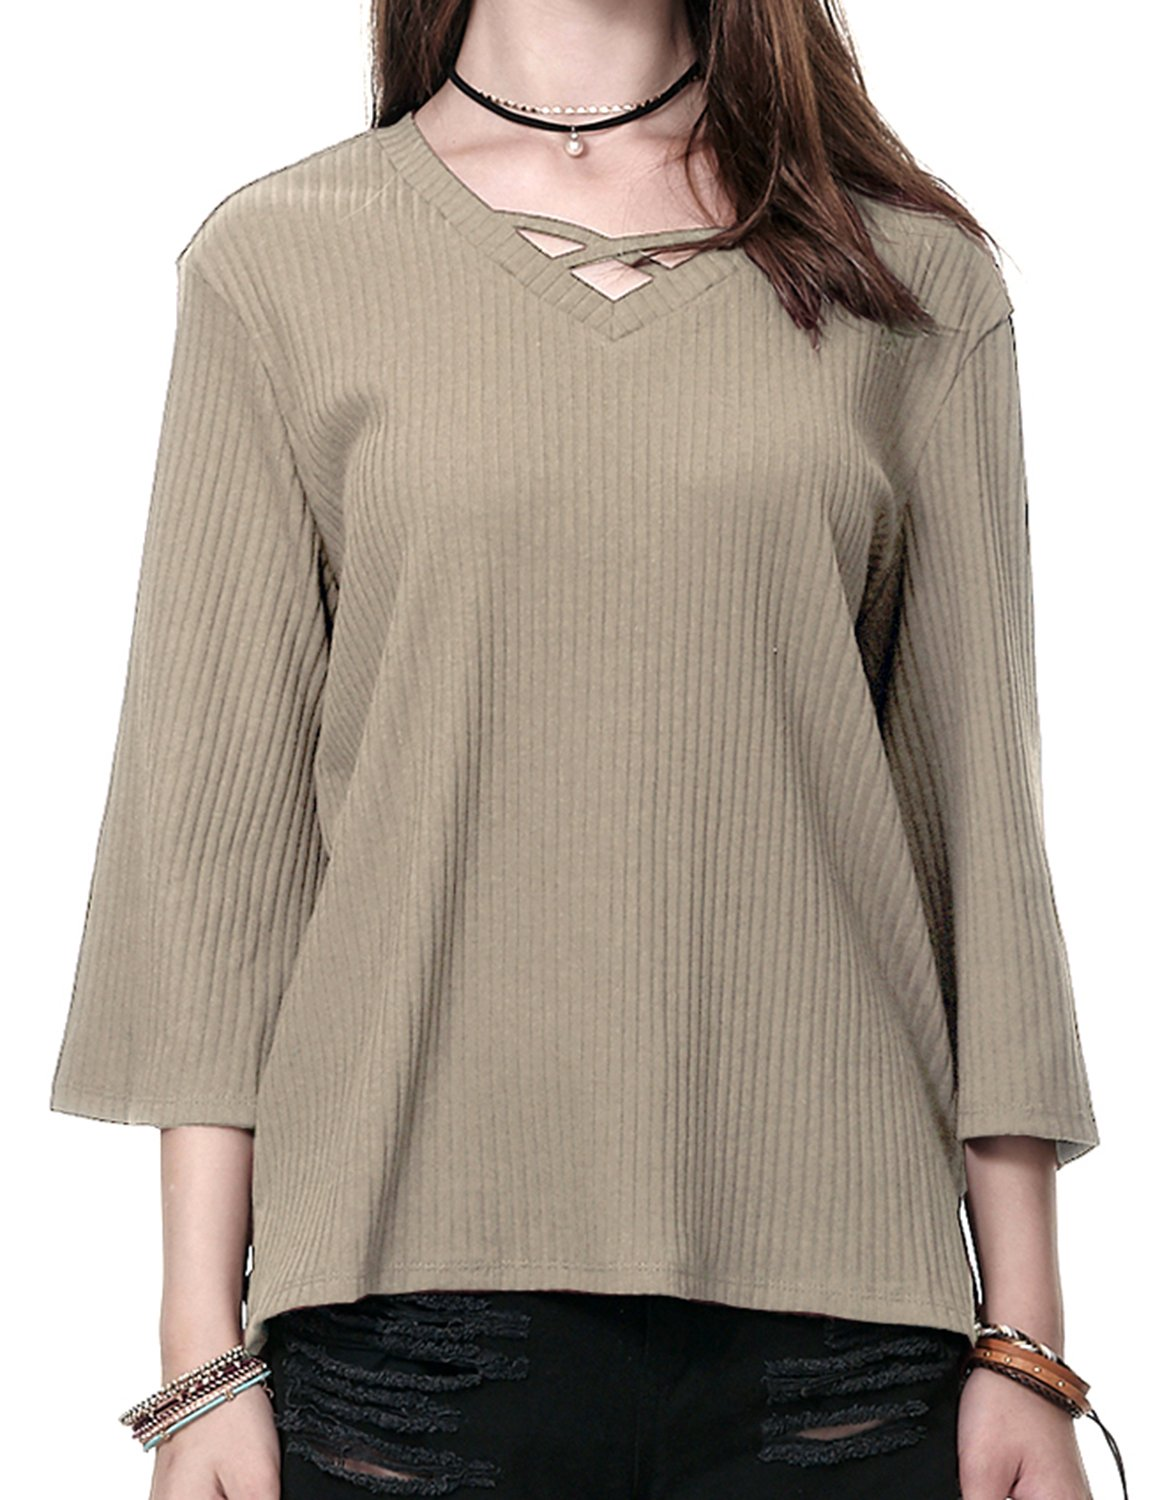 Regna X Boho for Woman's Feminine Swing Daily Beige Ivory Brown 3XL Plus Maternity 3/4 Bell Sleeve Criss Cross Ribbed Blouses Knit Shirts